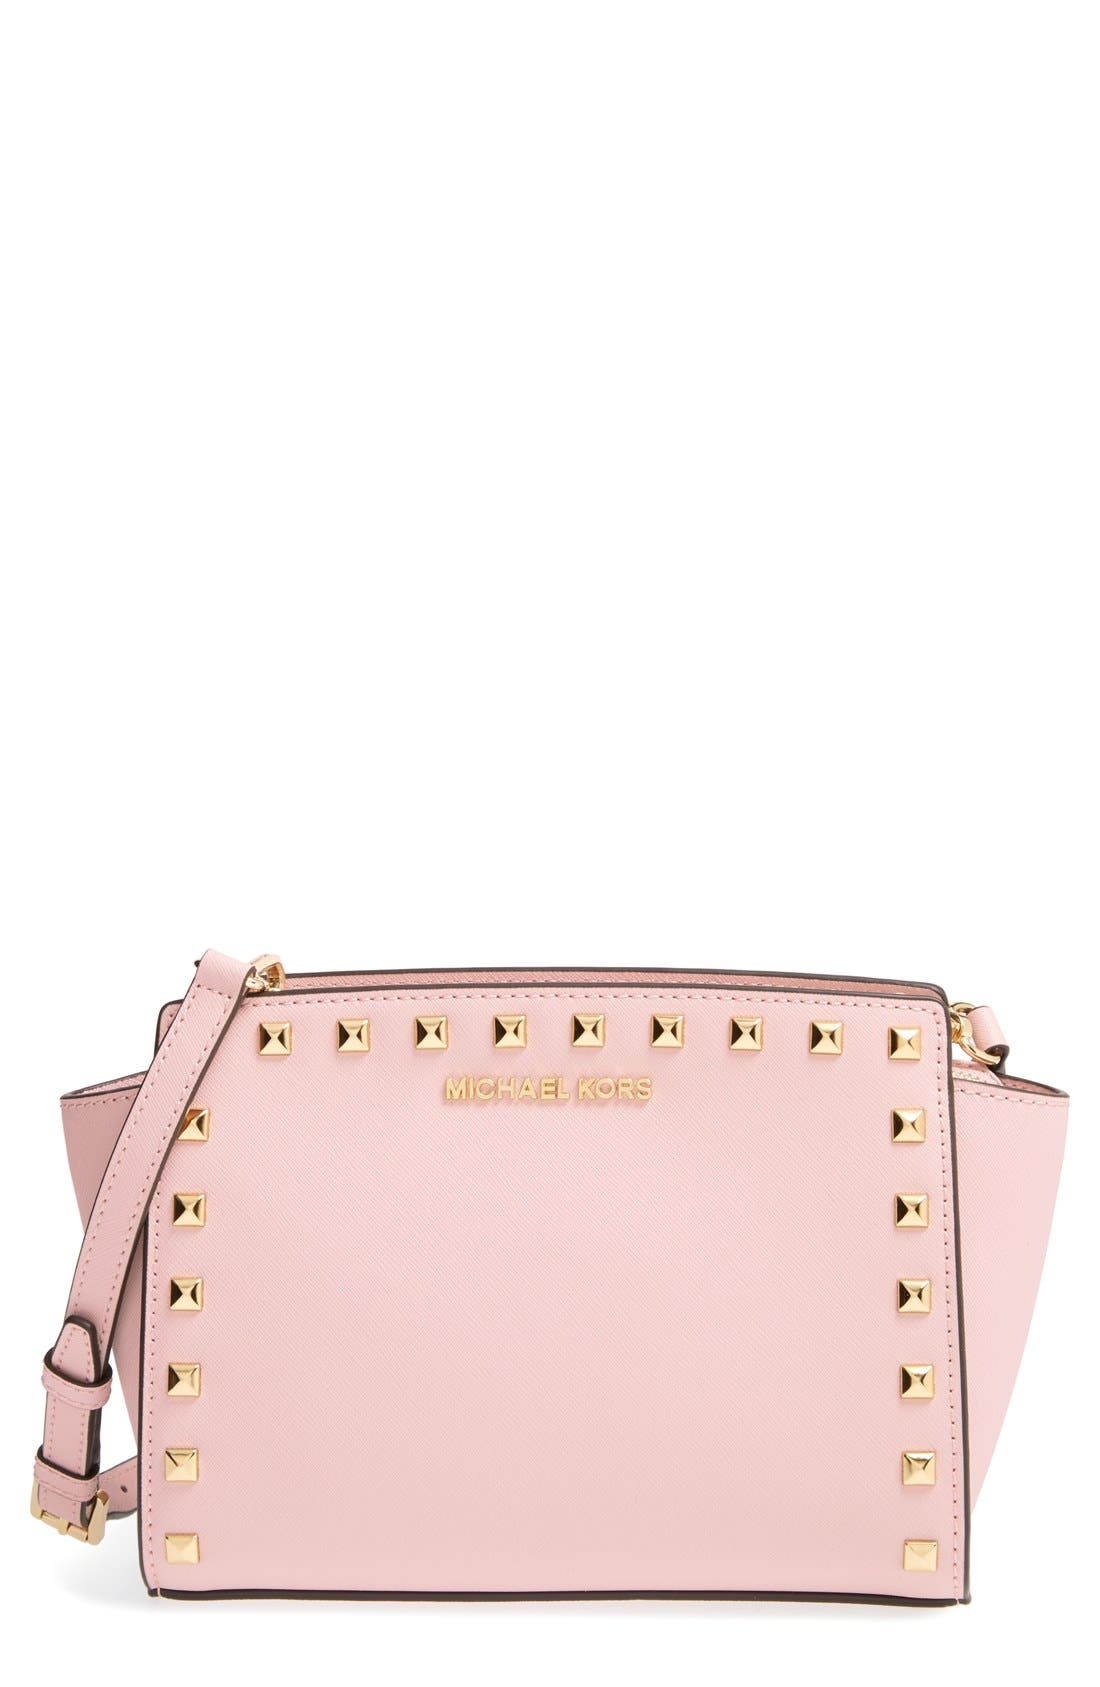 'Selma - Stud' Saffiano Leather Crossbody Bag,                             Main thumbnail 1, color,                             Blossom